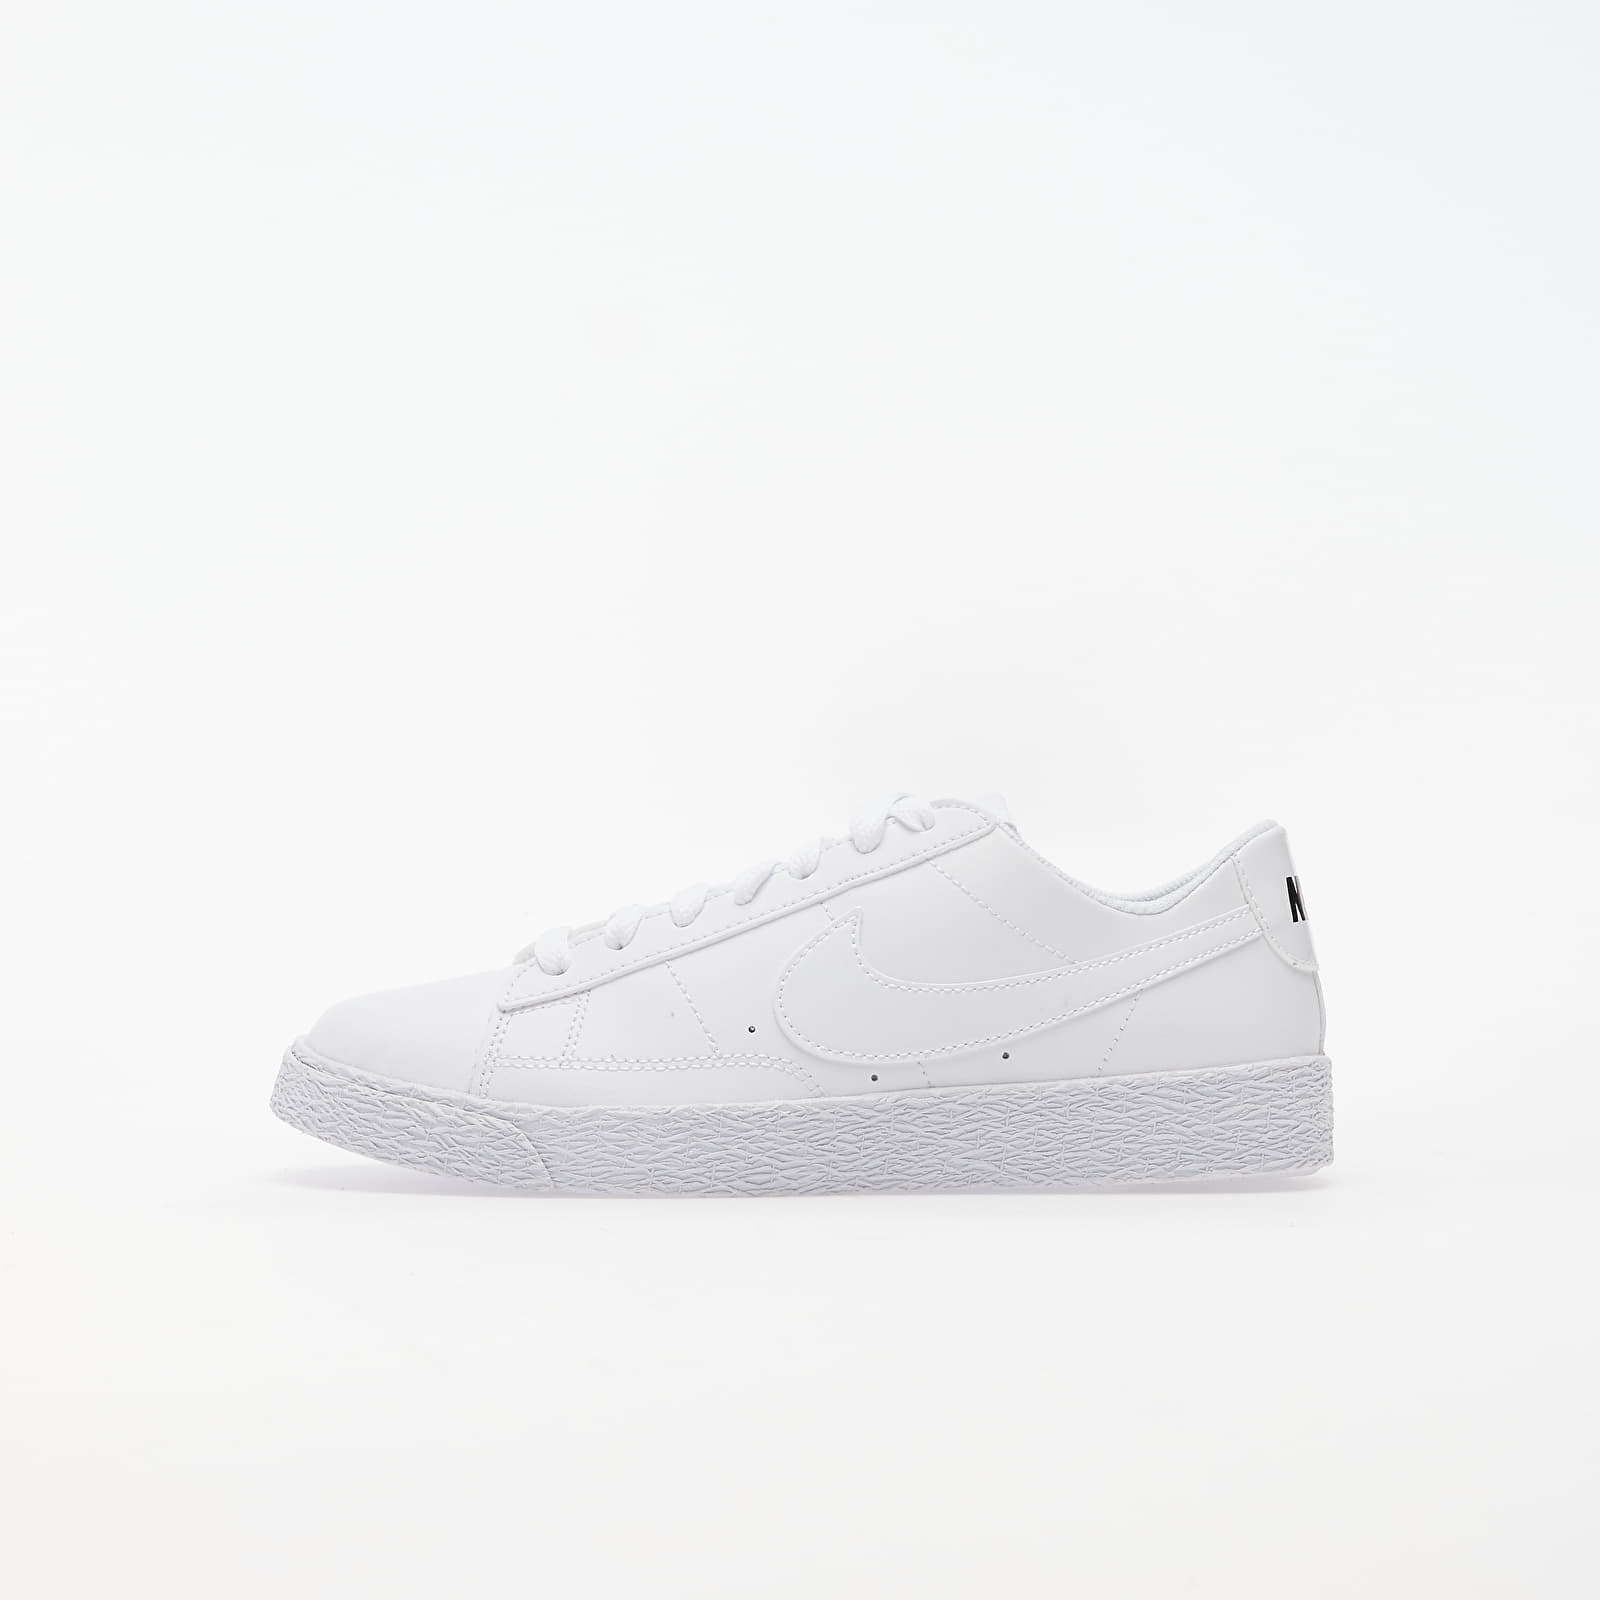 Chaussures et baskets enfants Nike Blazer Low (GS) White/ White-Black